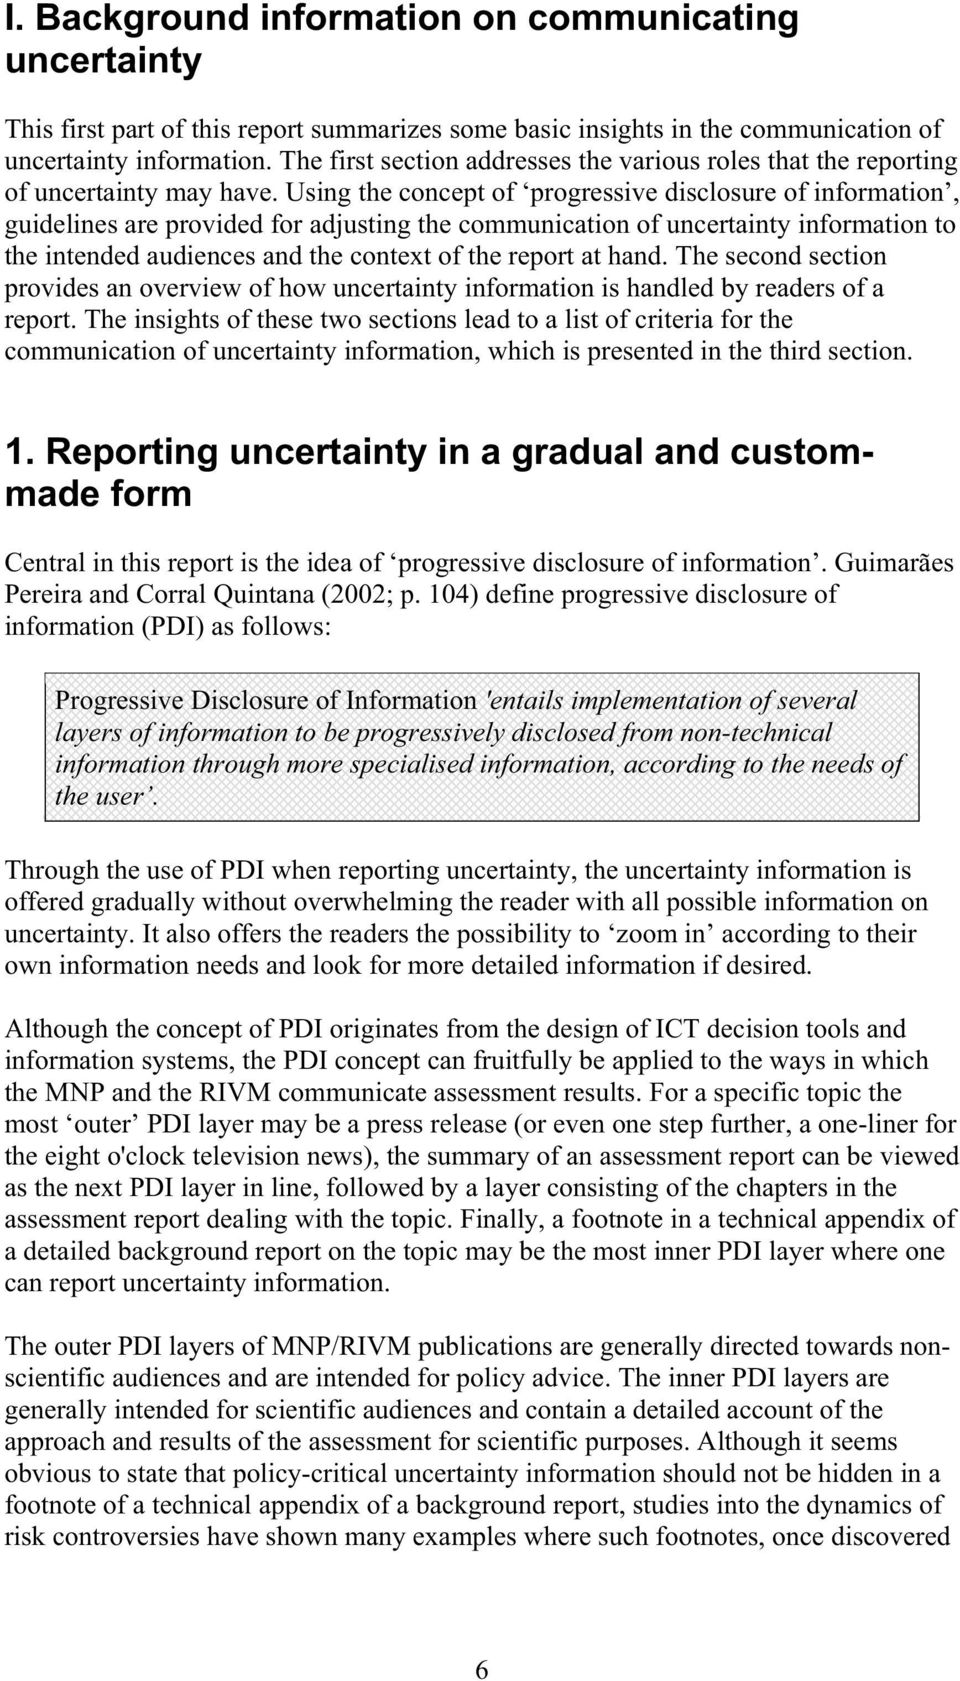 Using the concept of progressive disclosure of information, guidelines are provided for adjusting the communication of uncertainty information to the intended audiences and the context of the report